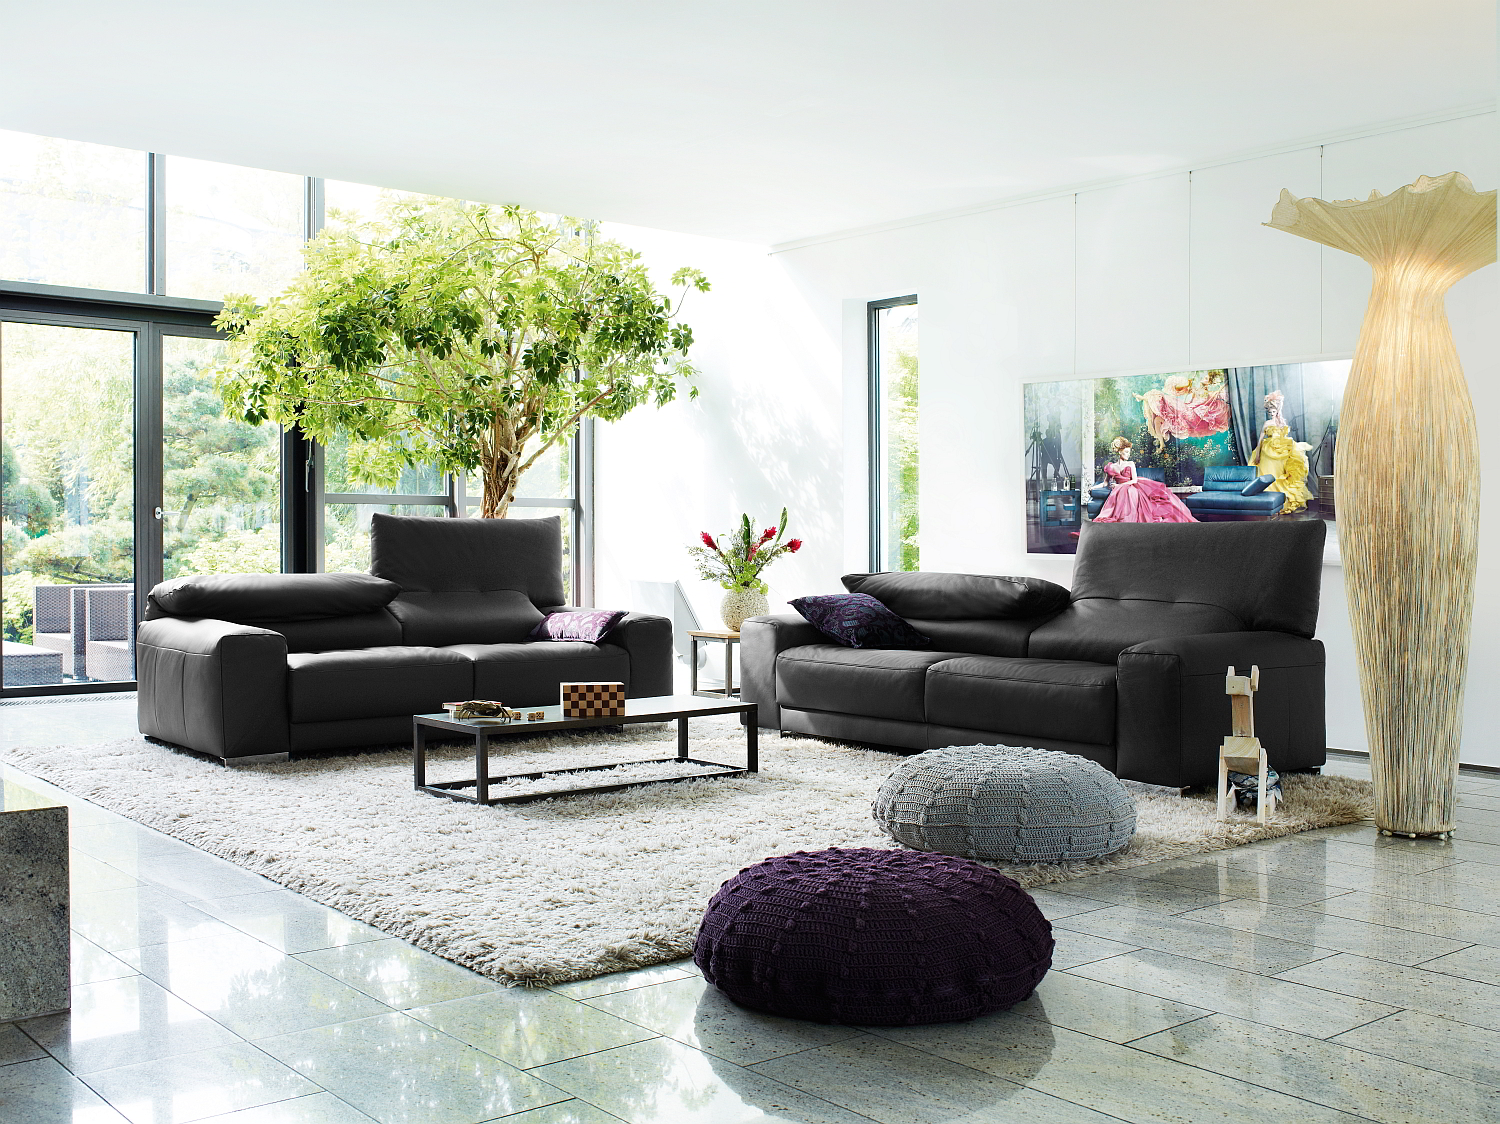 manhatten sofa images effect of painting ceiling same color as walls ve exclusive lower. Black Bedroom Furniture Sets. Home Design Ideas